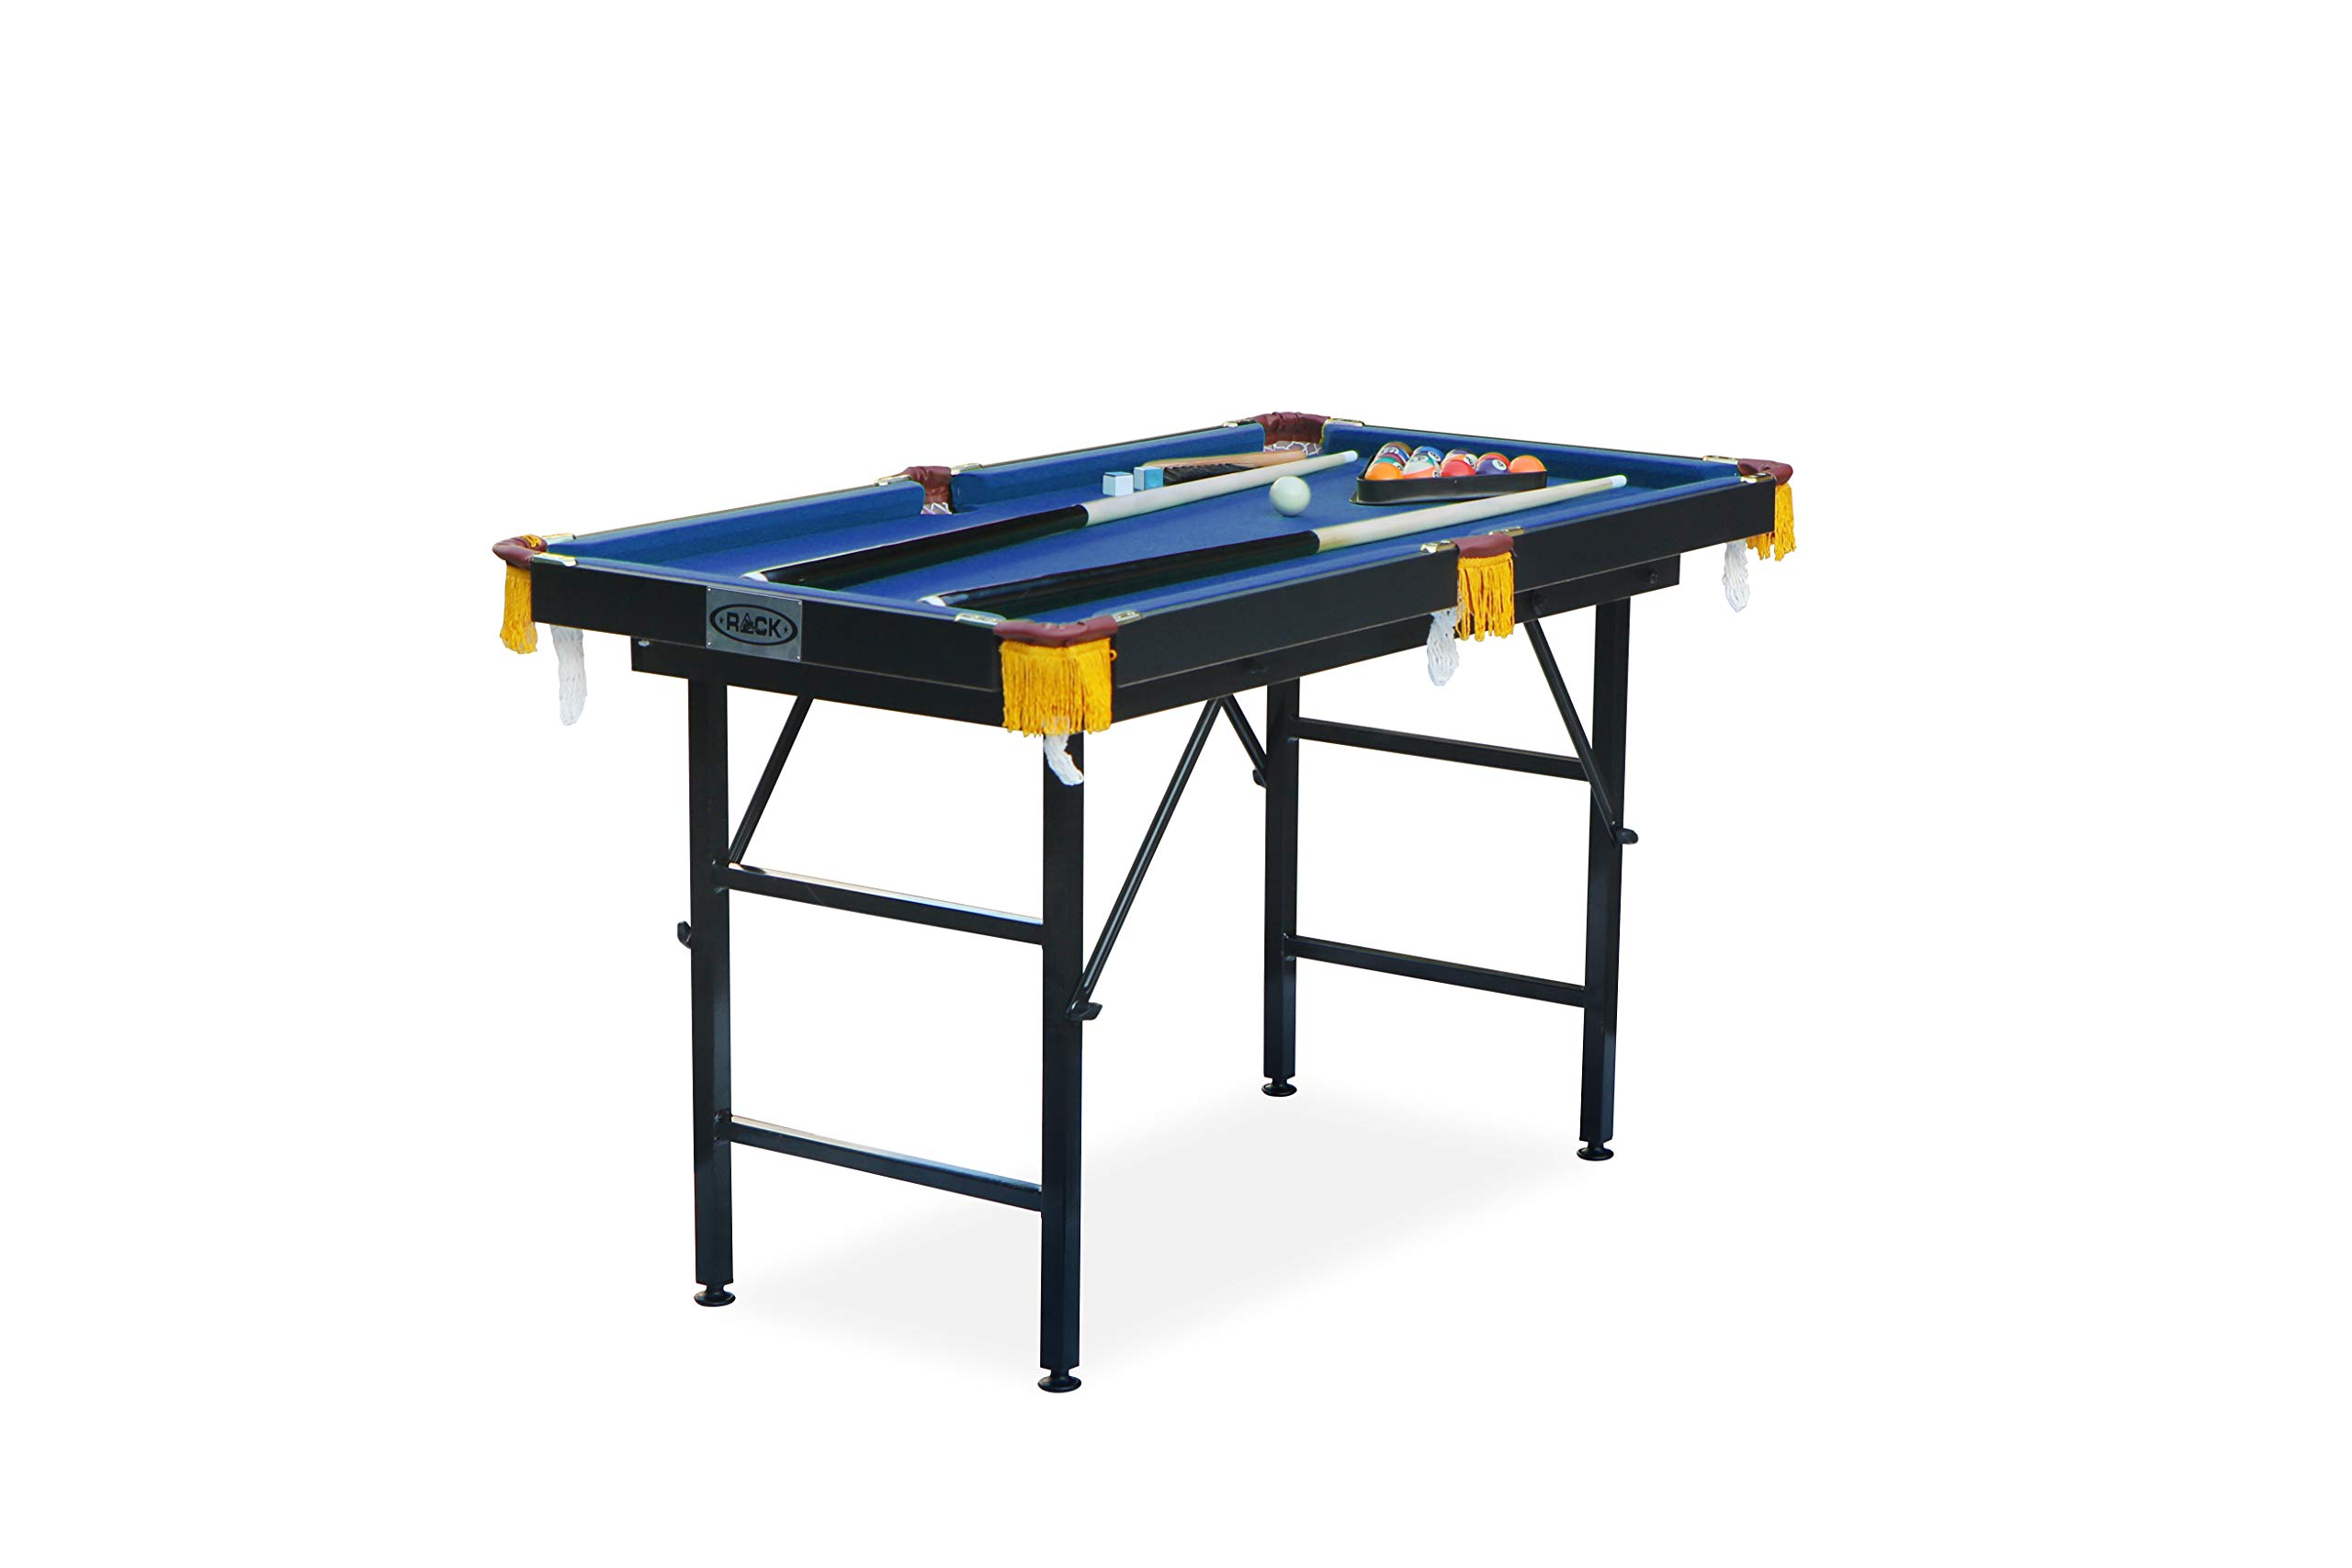 Rack Leo Mesa de Billar Plegable de 4 pies, Azul: Amazon.es ...